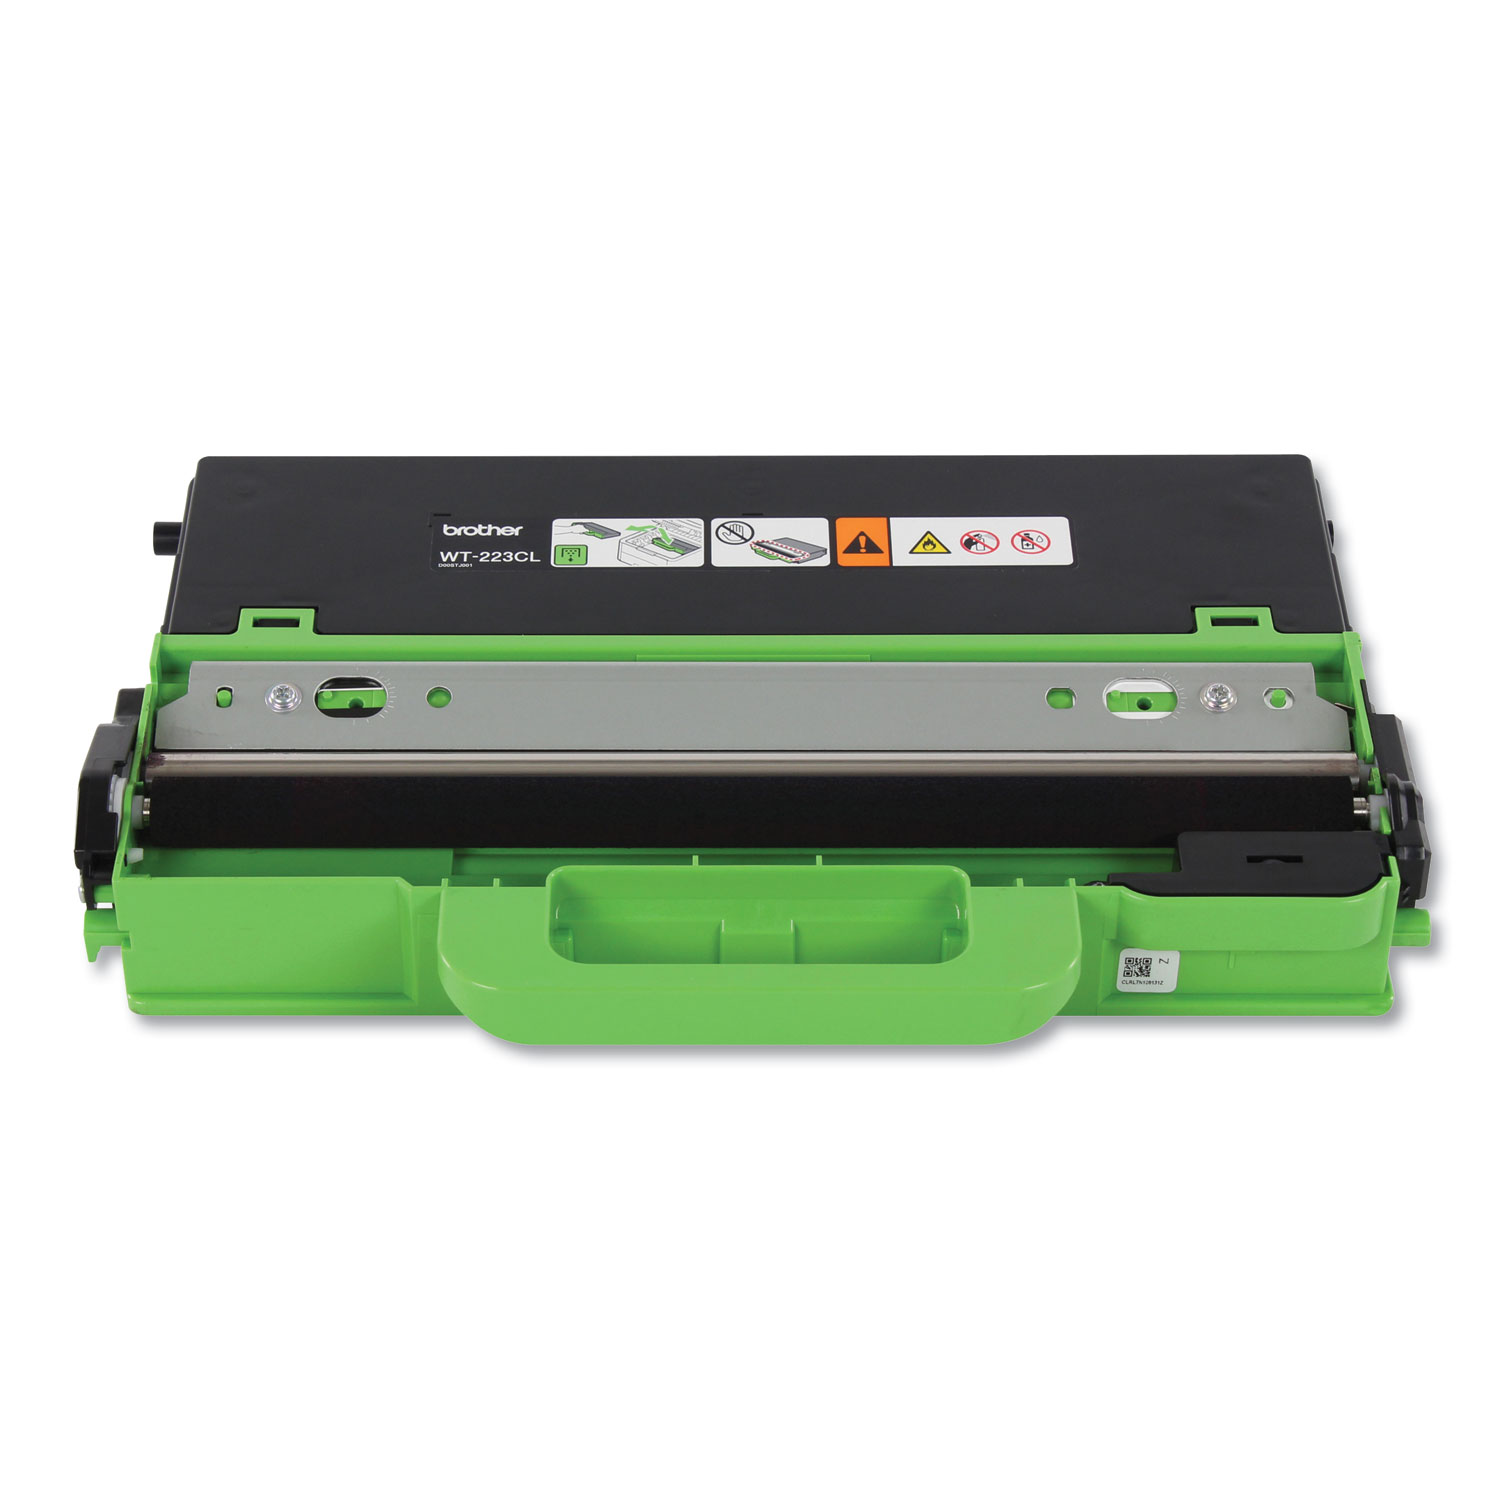 WT223CL Waste Toner Box, 50000 Page-Yield